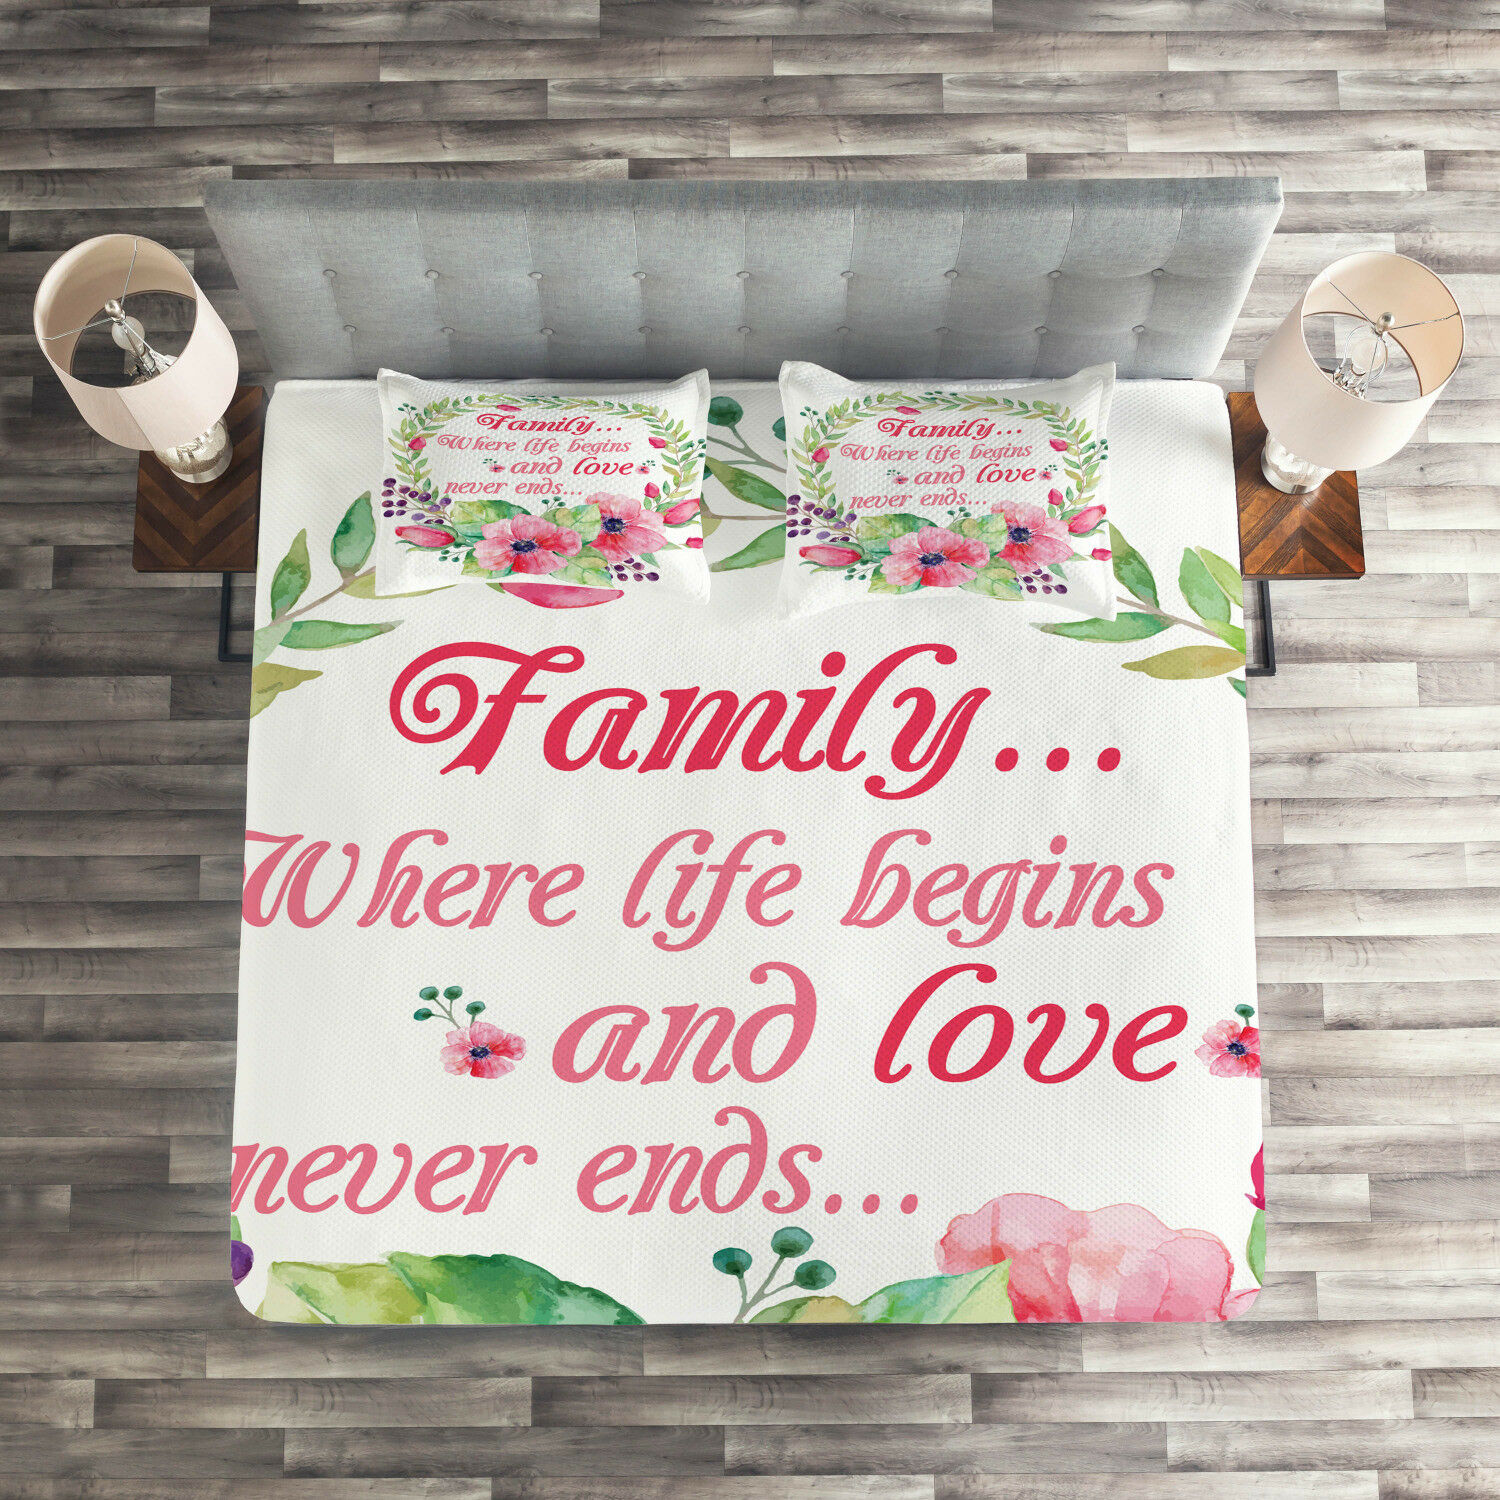 Quote Quilted Coverlet & Pillow Shams Set, Wreath and Flower Design Print